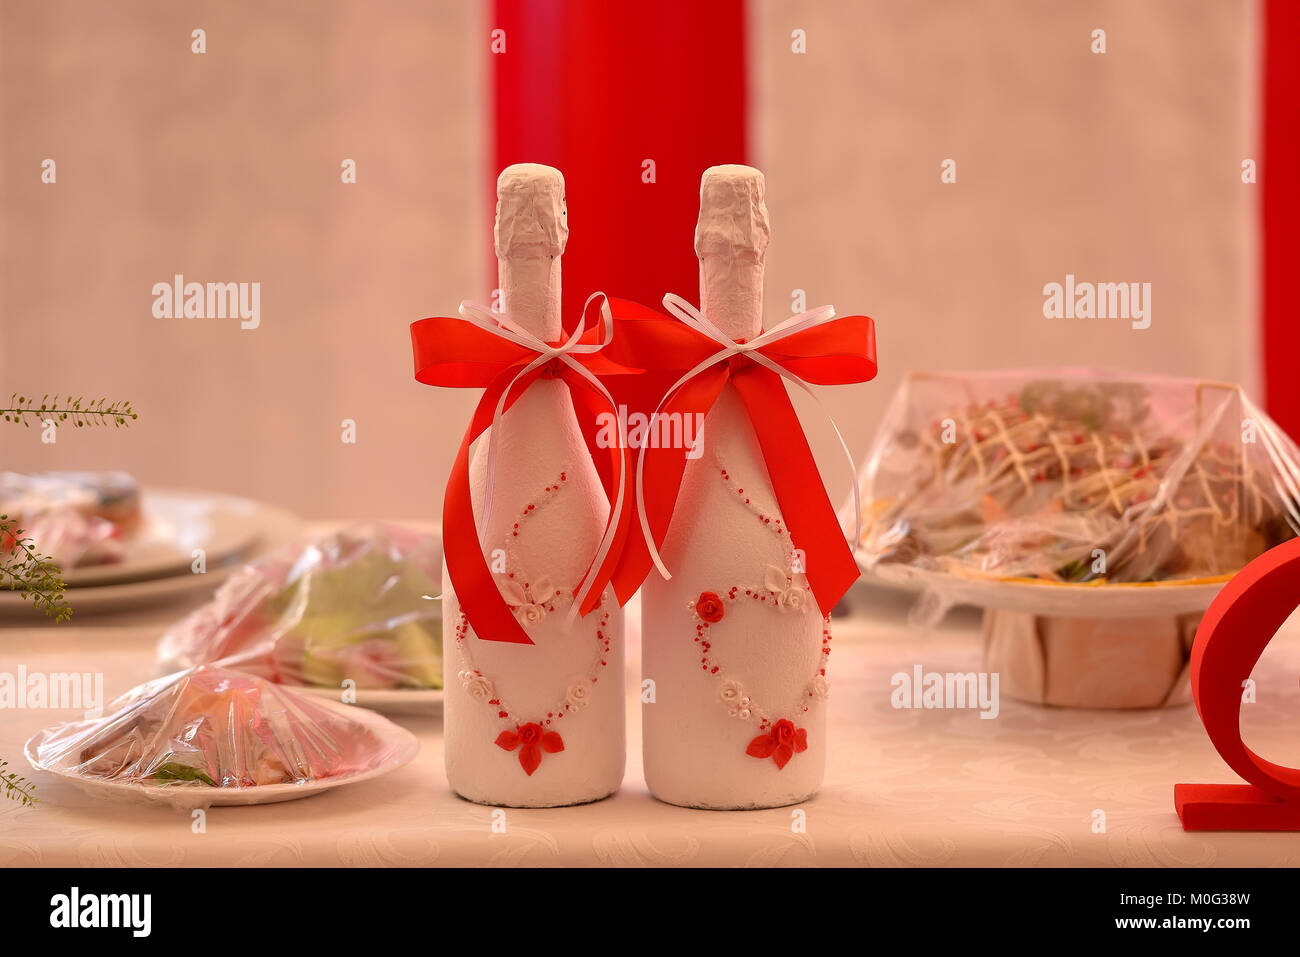 Bottle Champagne Wedding Decoration Ribbon Stock Photos & Bottle ...